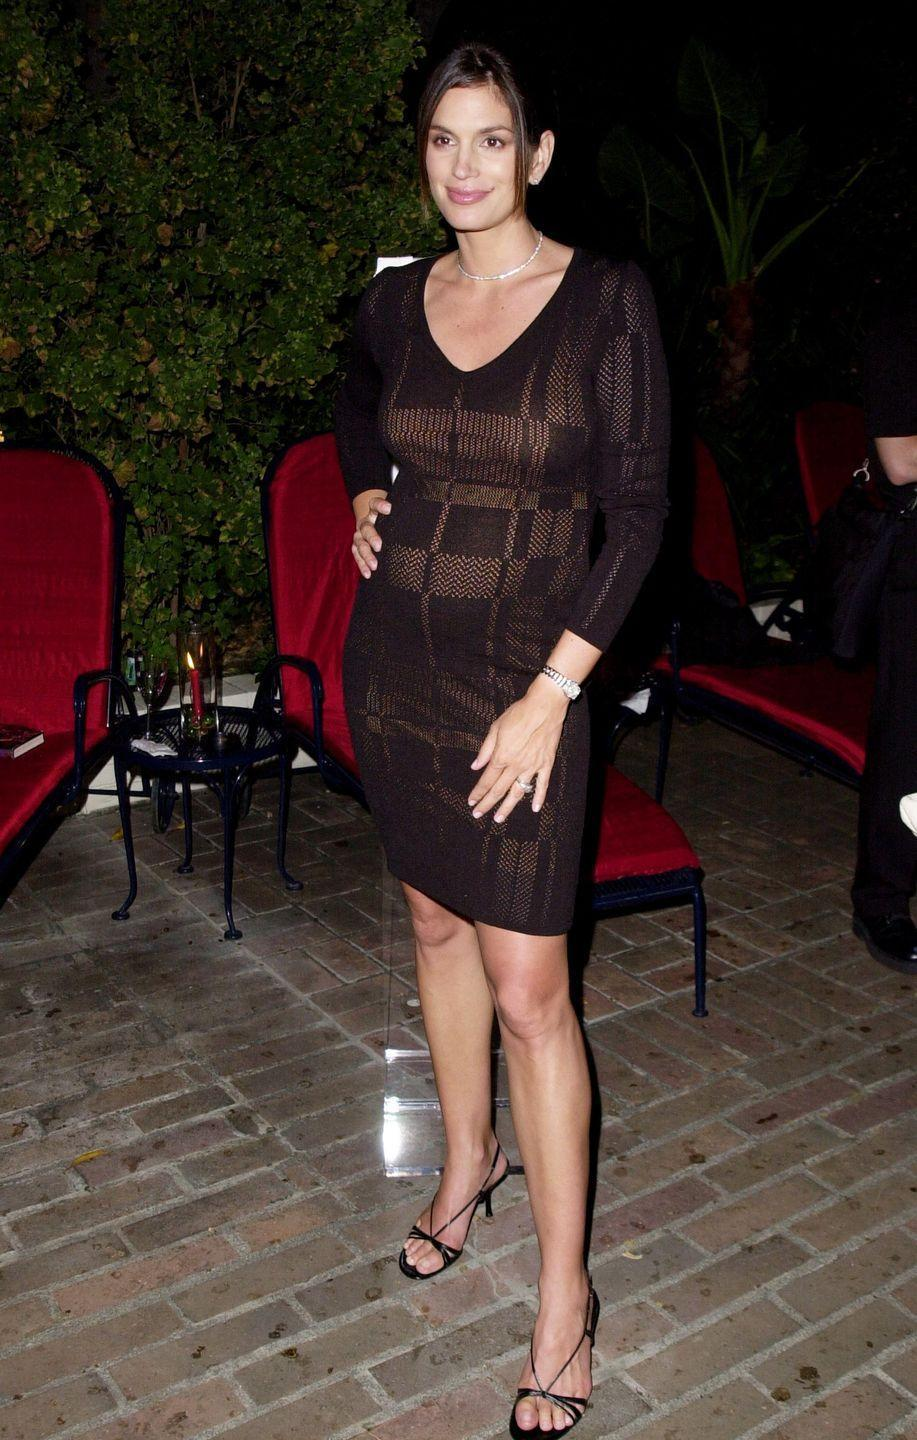 <p>Bodycon dresses, like this one on Cindy Crawford, became a go-to look for women wanting to show off their bumps.</p>